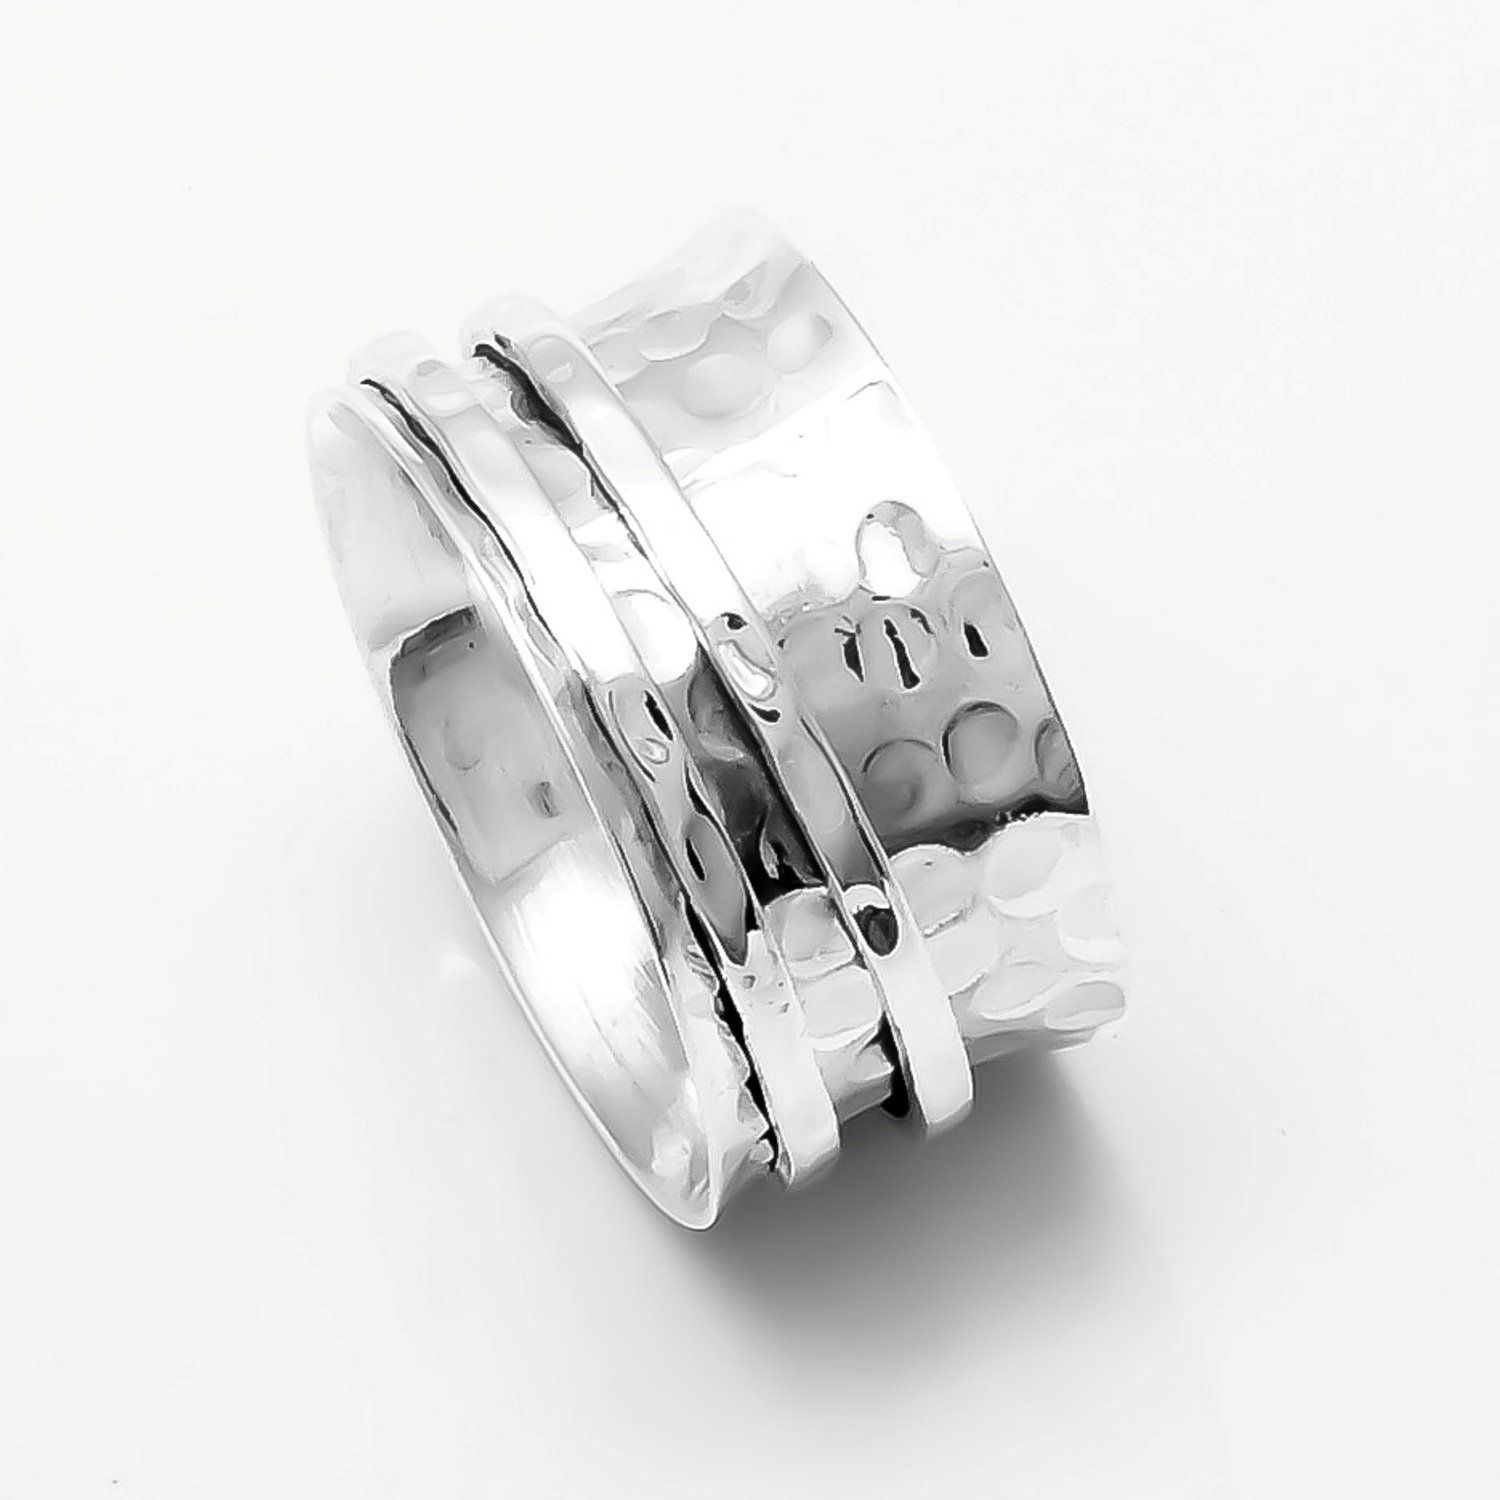 Handmade Spinner Ring Solid 925 Sterling Silver Meditation Statement Jewelry